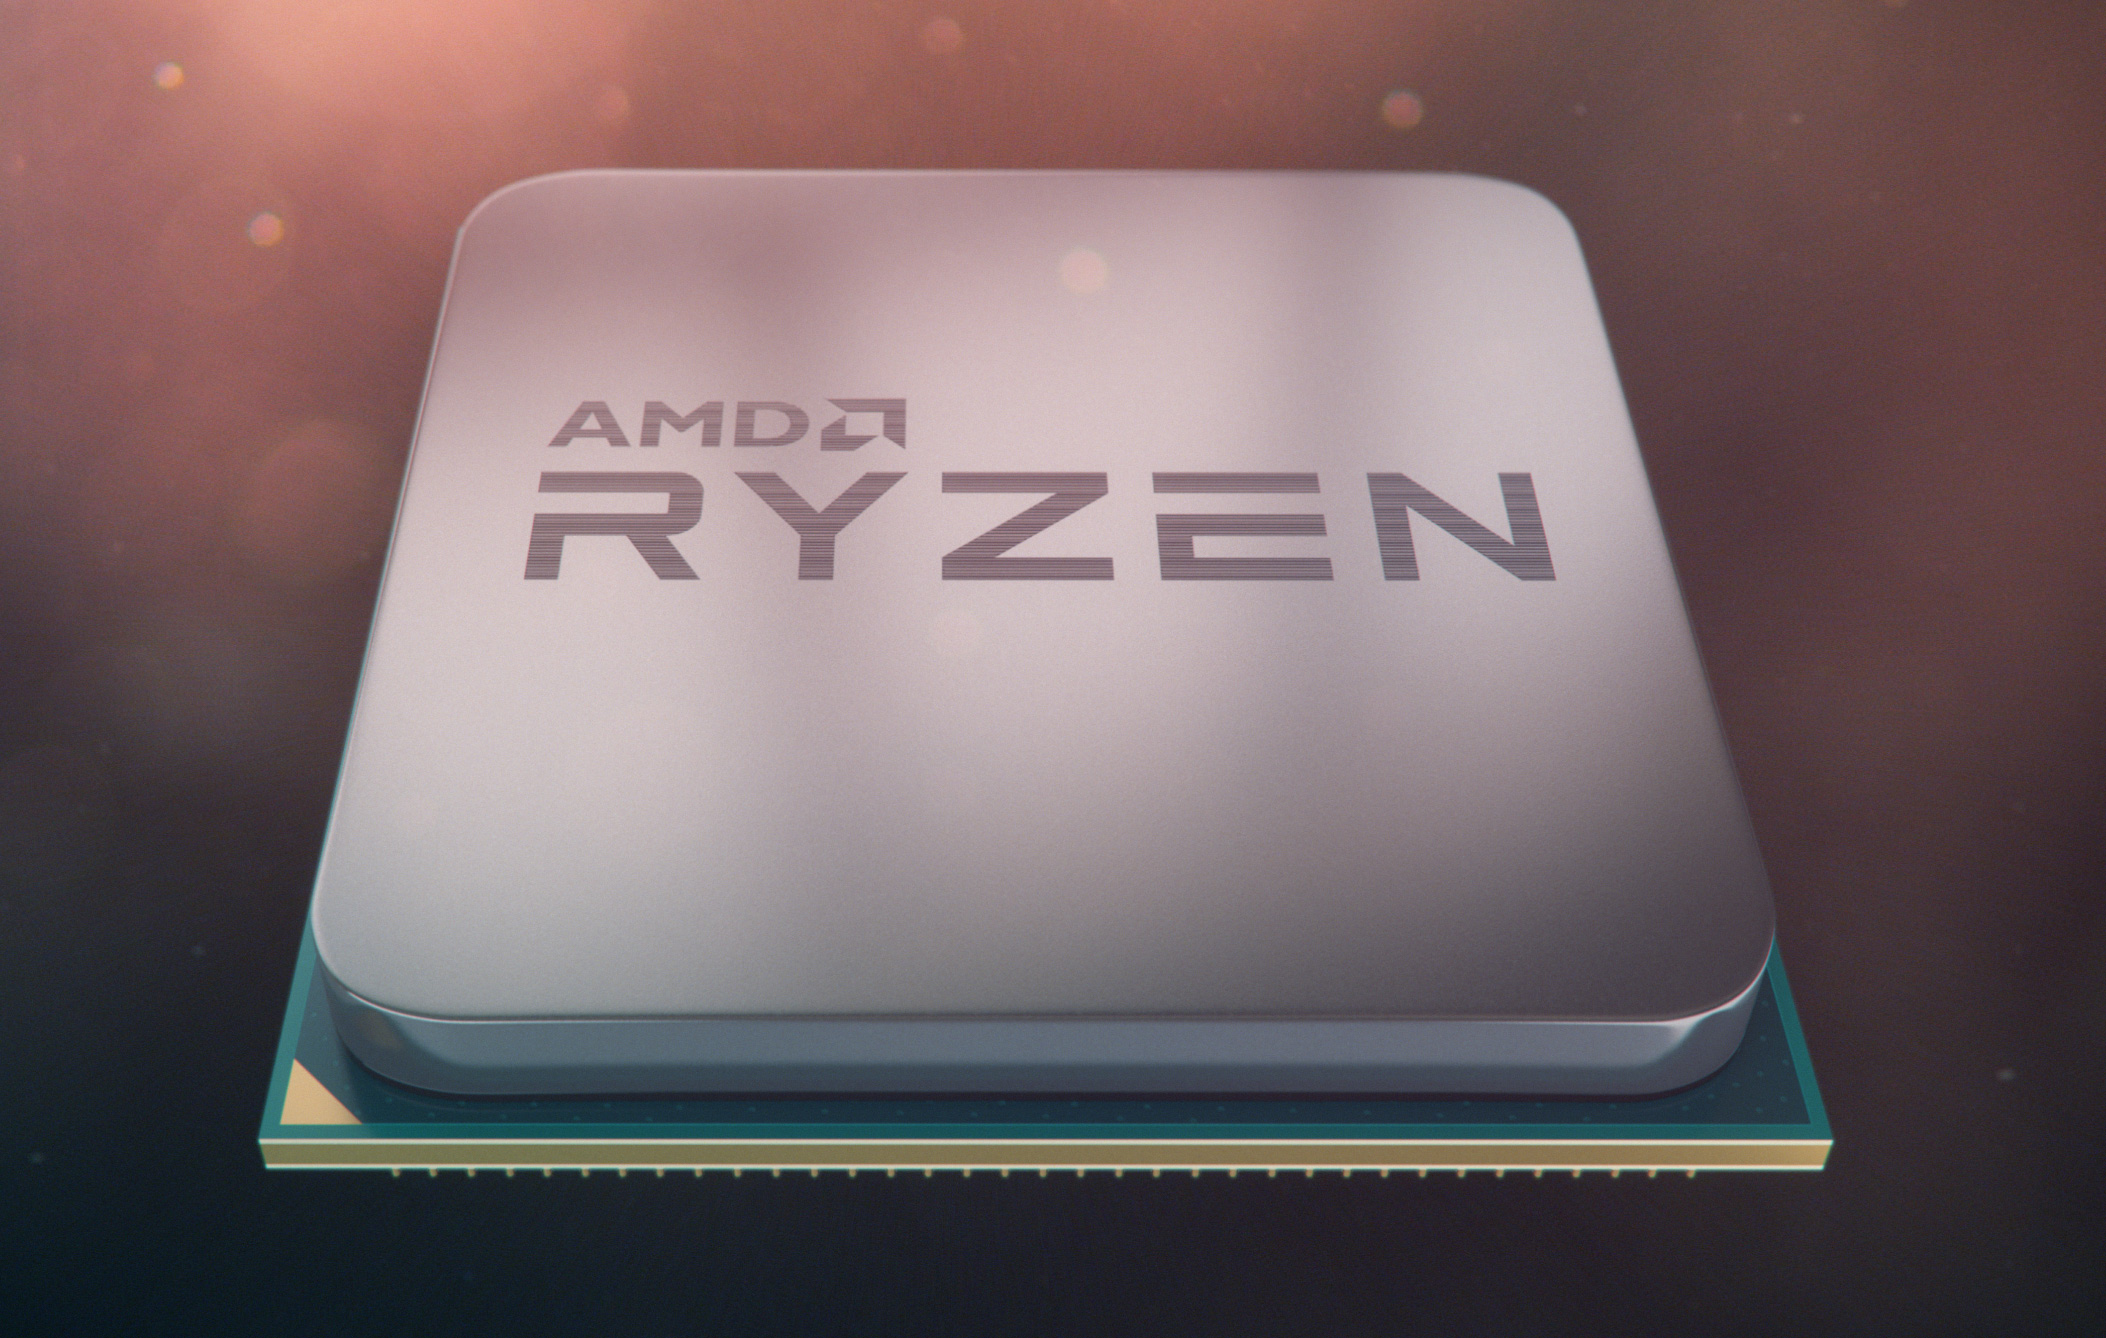 AMD Launches Ryzen: 52% More IPC, Eight Cores for Under $330, Pre